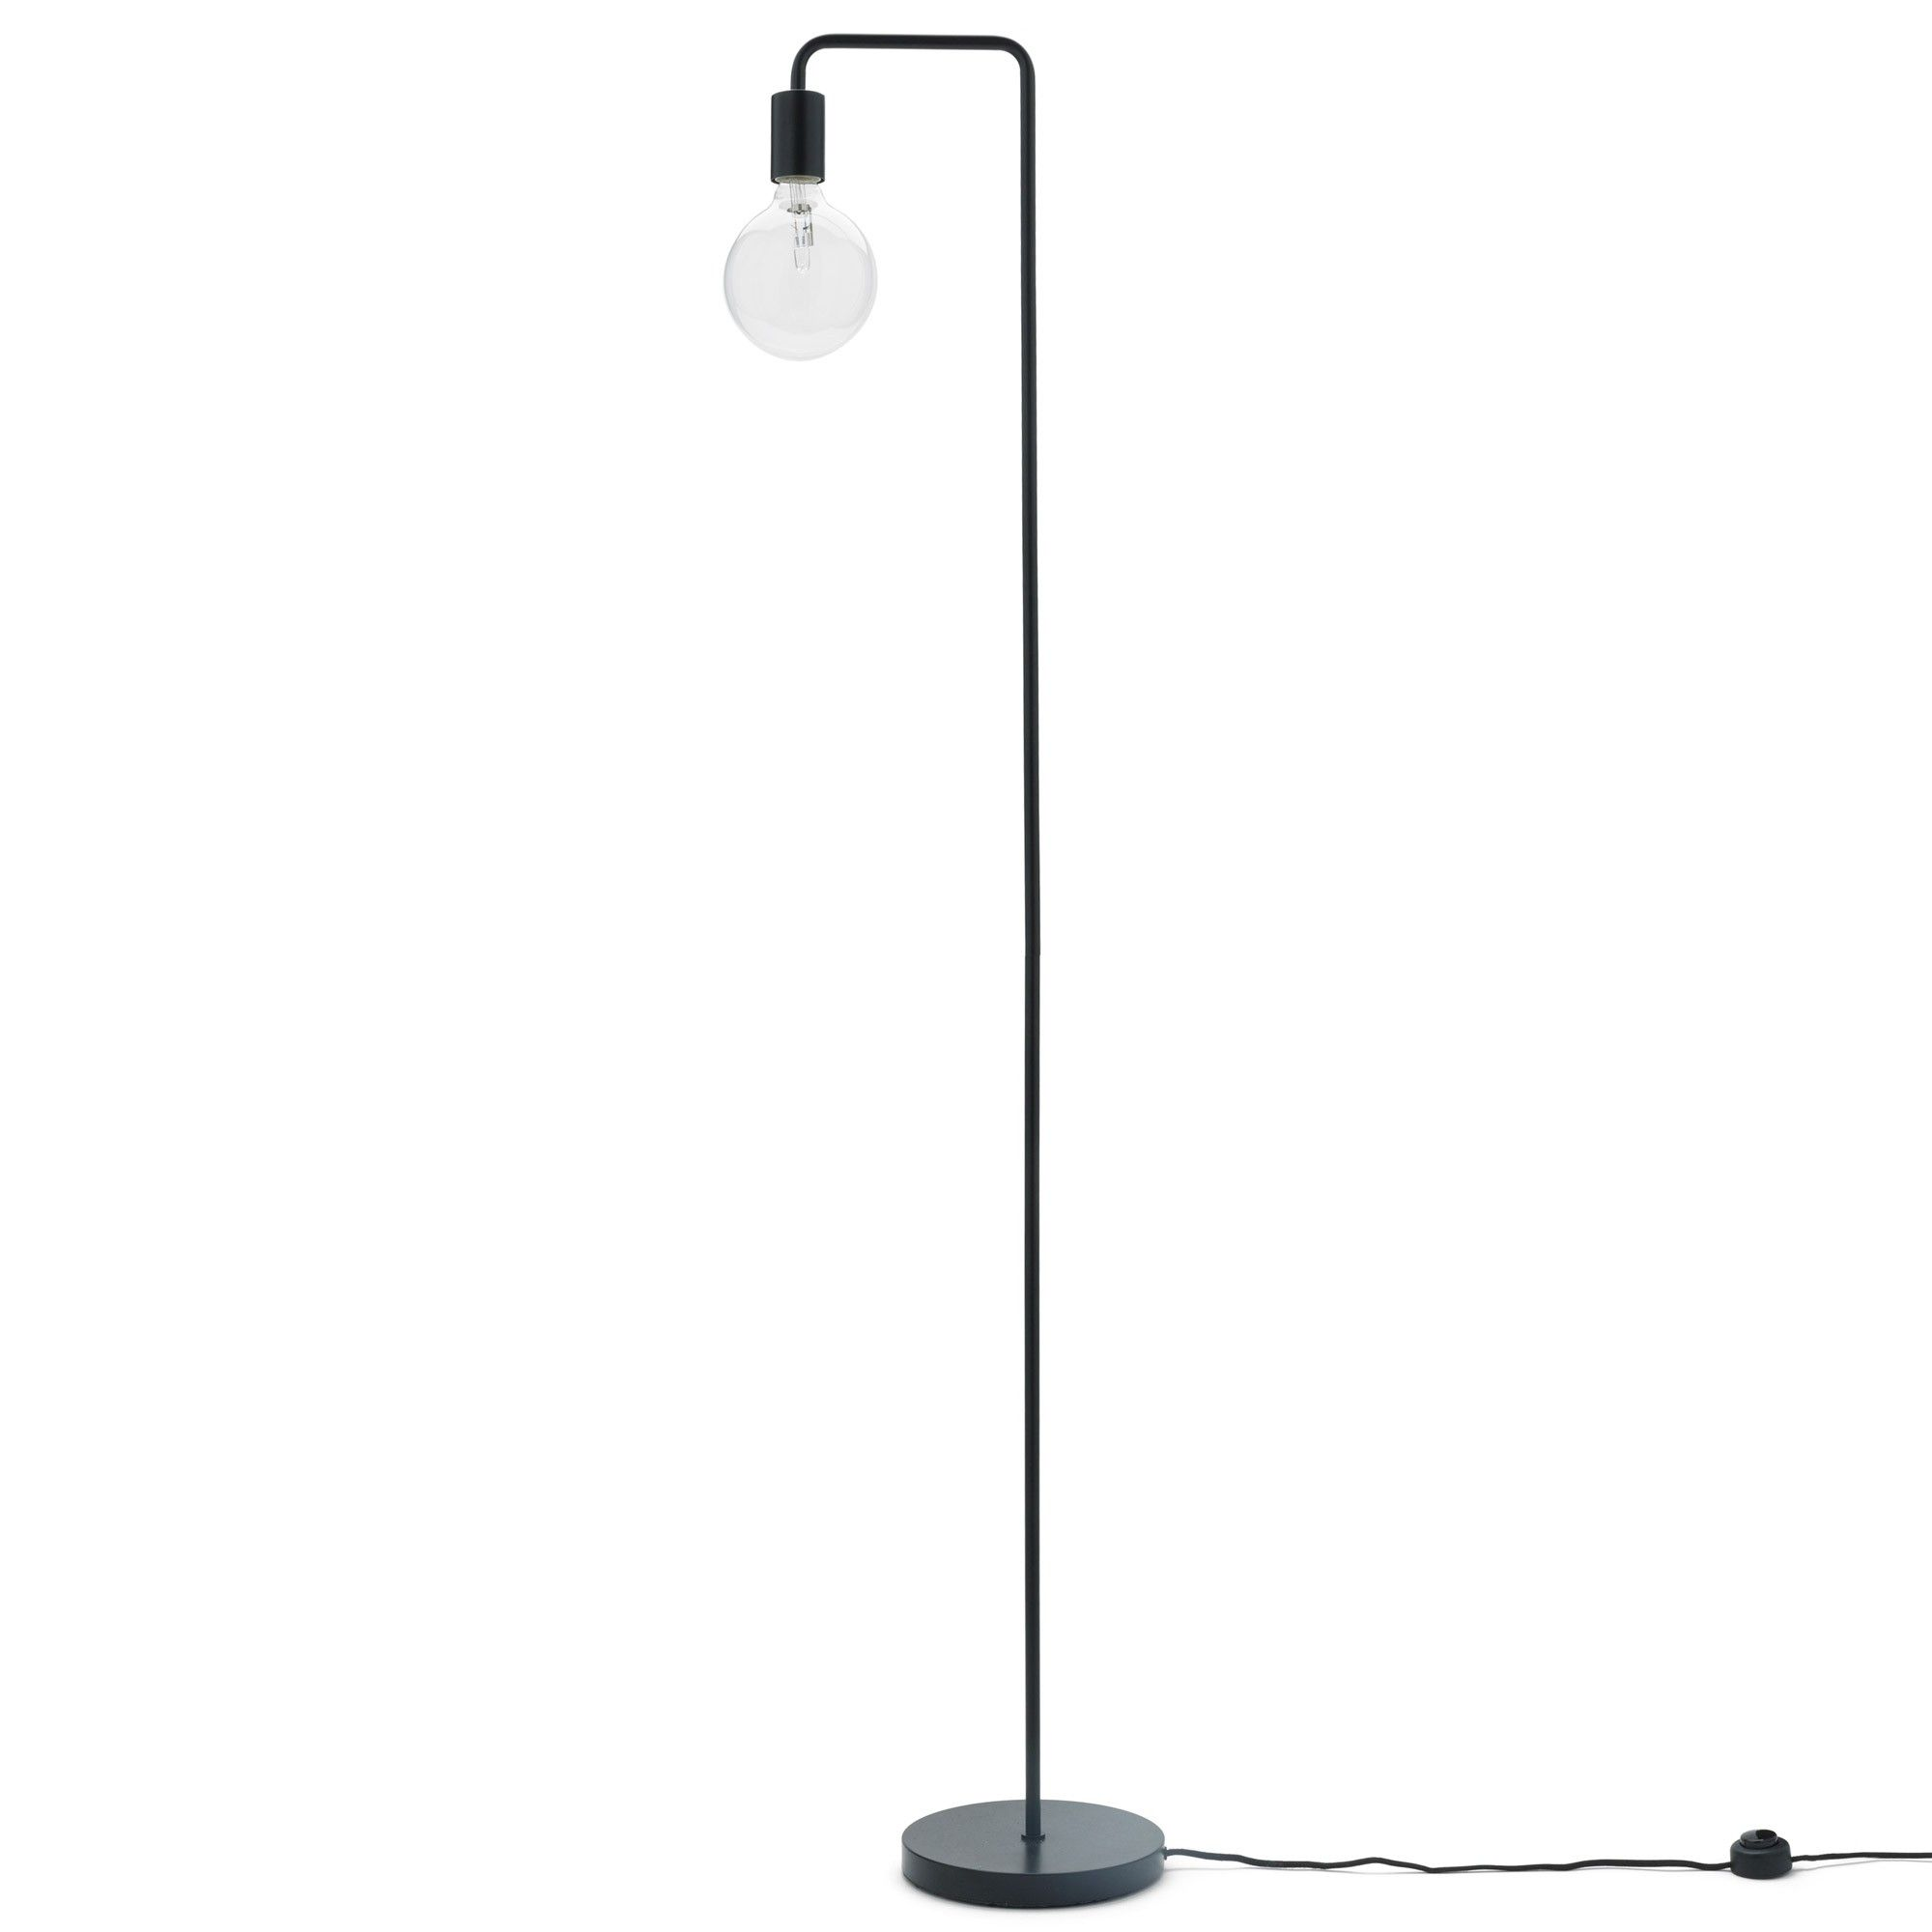 Lampen Dänisches Design Stehlampe Vida Schwarz 10x153 Cm In 2019 Furniture